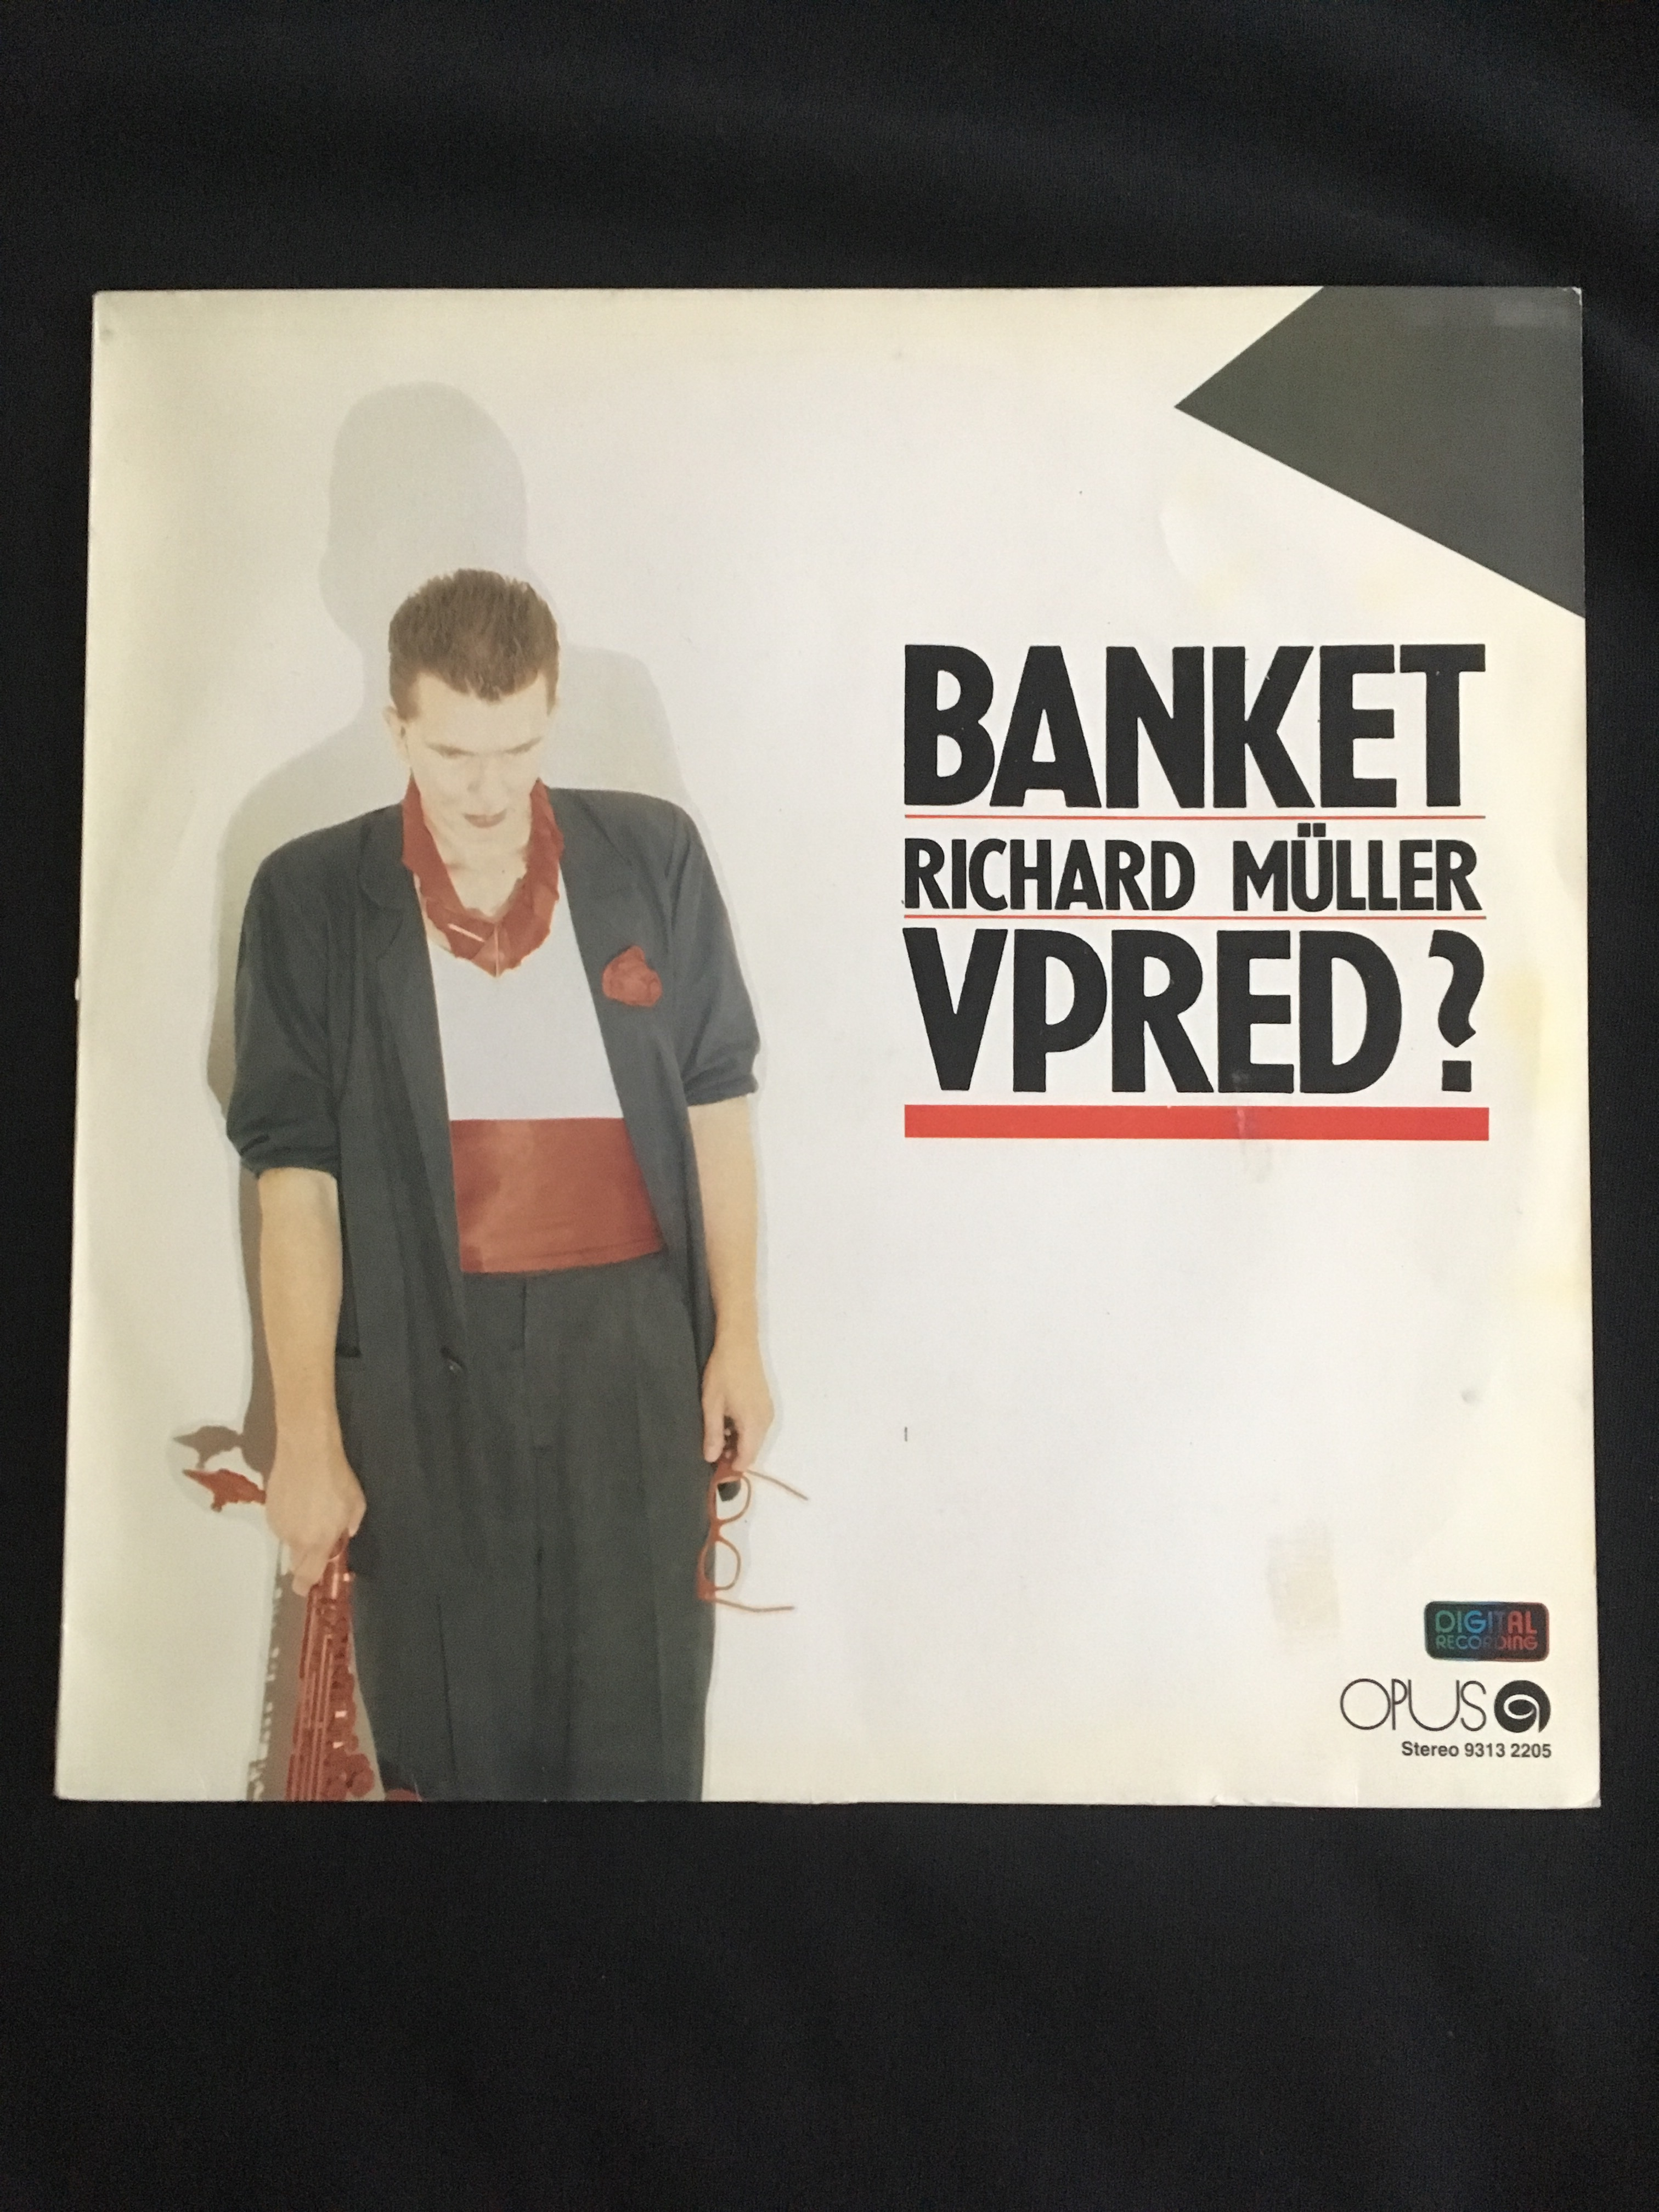 Banket-Richard Müller -vpred?